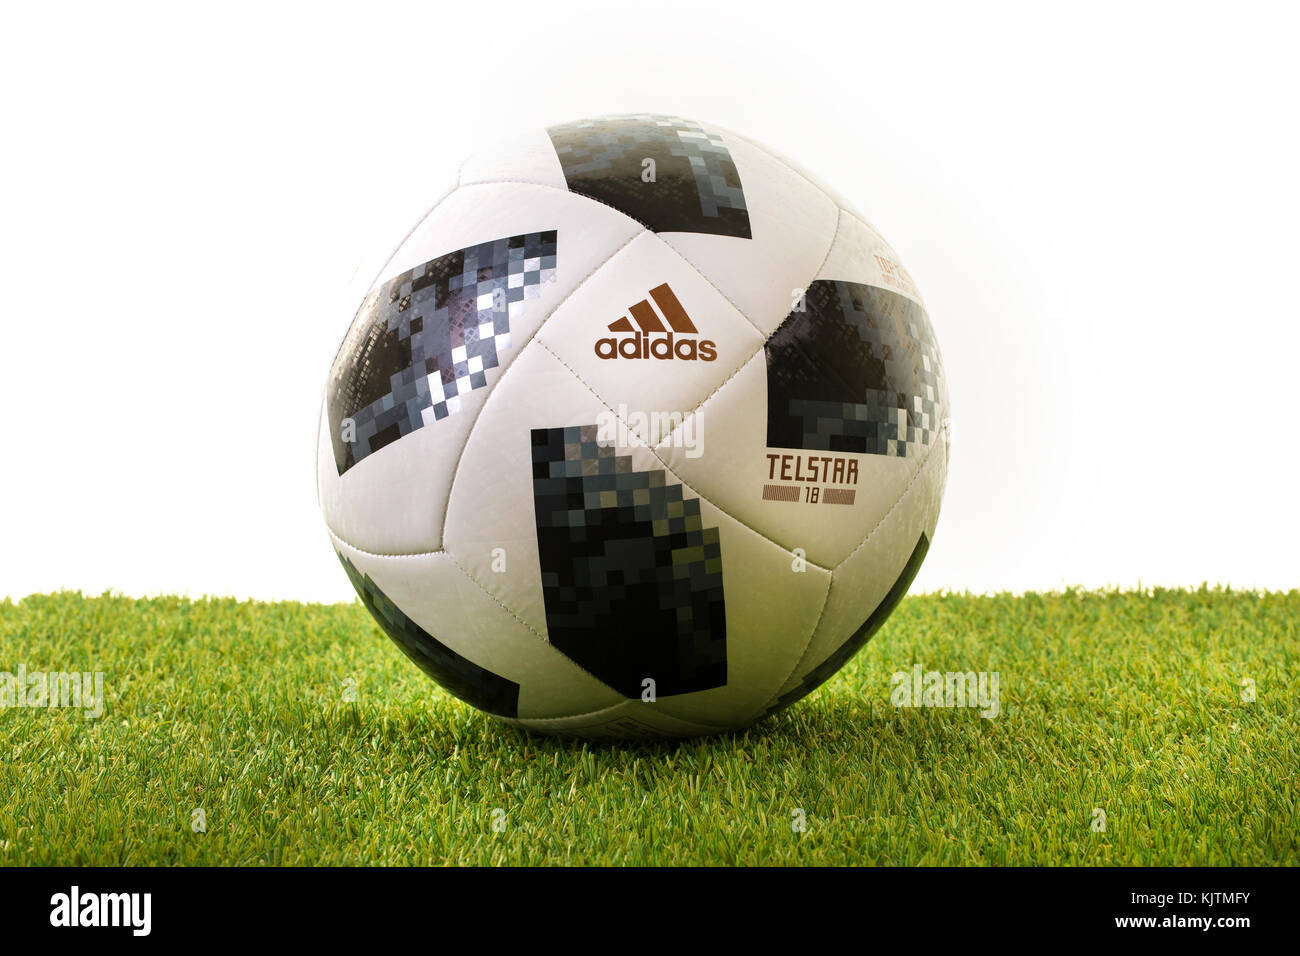 0b72b0d2951 Fifa World Cup 2018 Adidas Telstar Football Stock Photos   Fifa ...